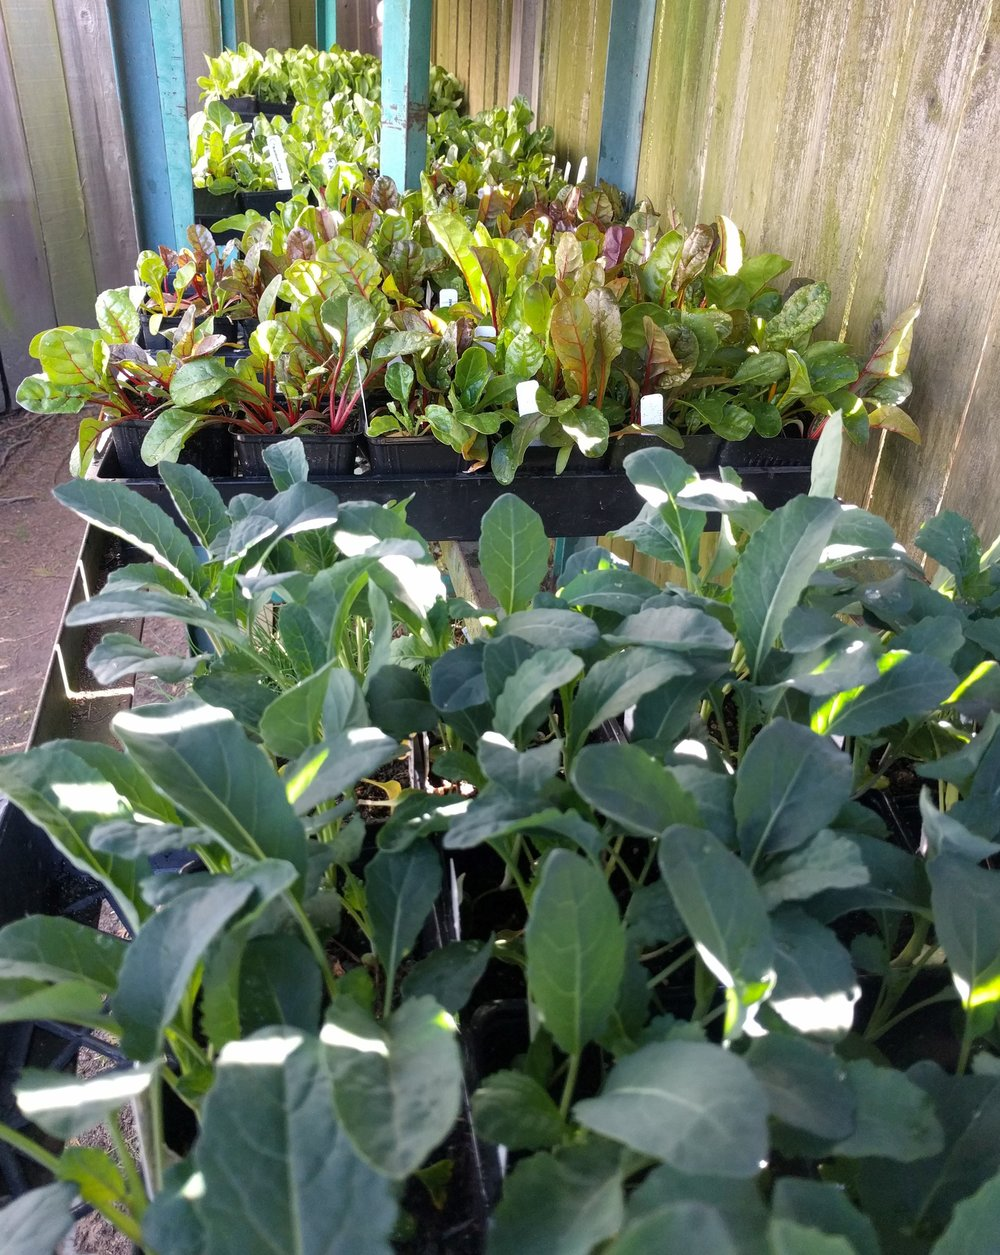 The Seattle Giving Garden Network Is An All Volunteer Run Organization  Which Helps Connect Gardens, Greenhouses, And Gardeners In Order To Grow  And Donate ...